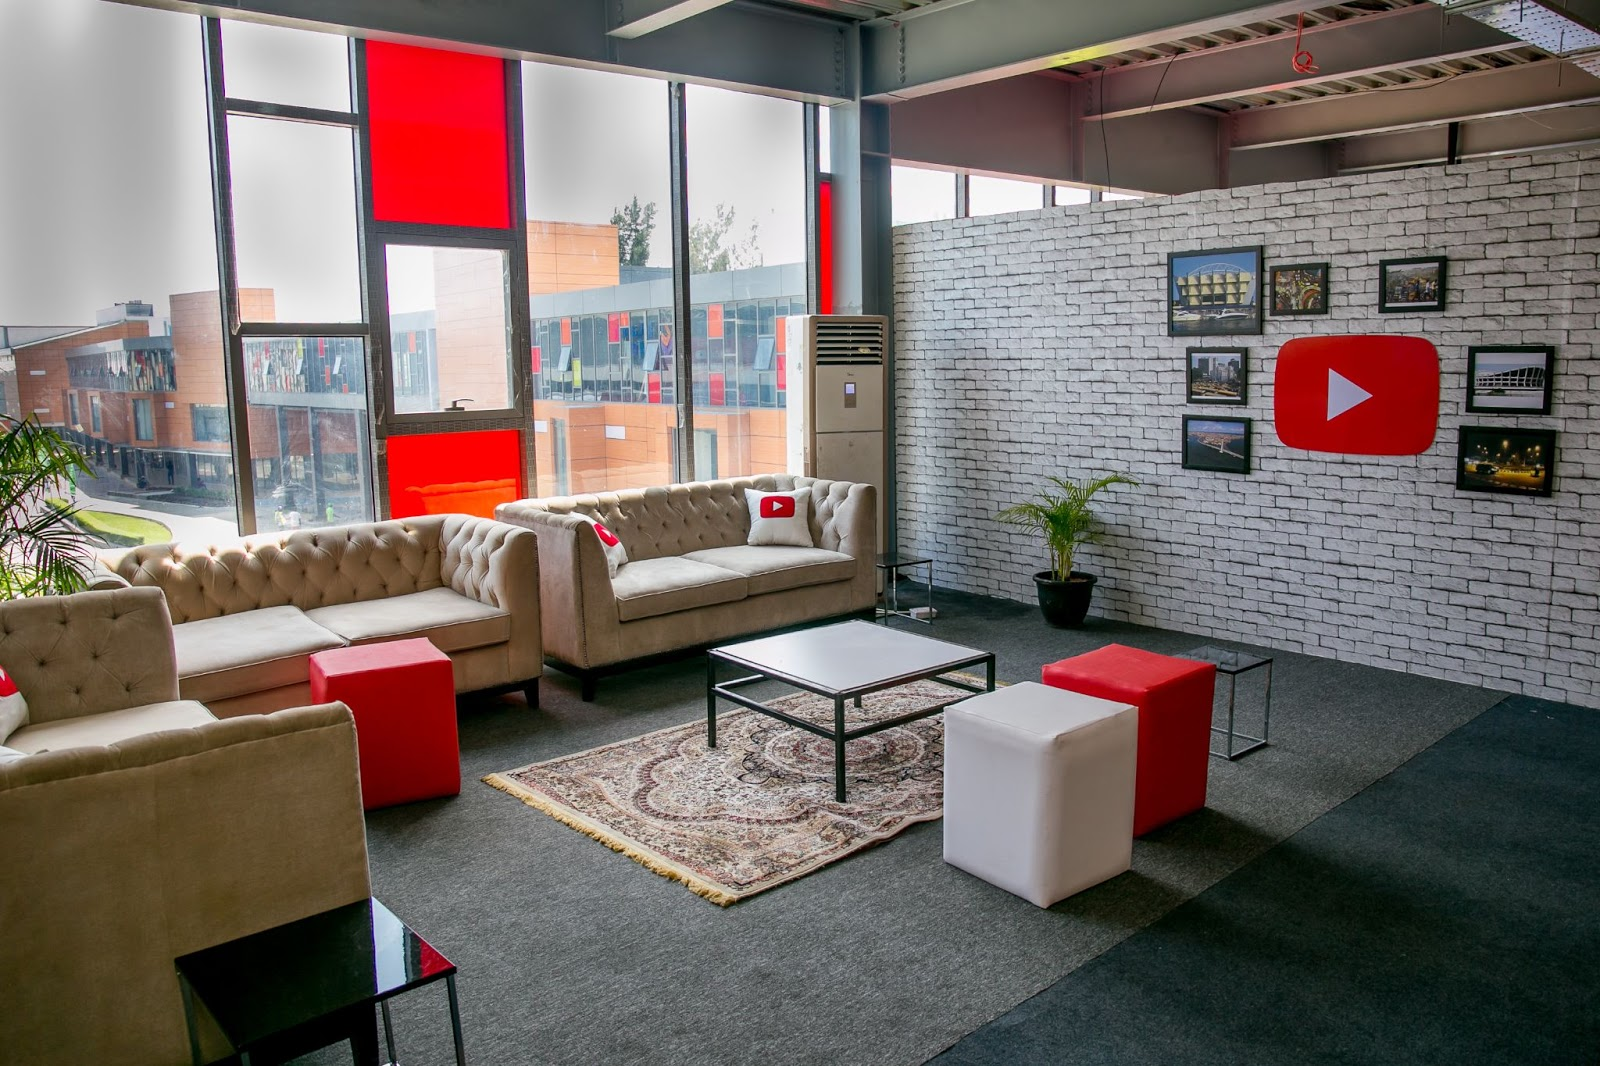 When we held in-person events, YouTube had creator event spaces like this one